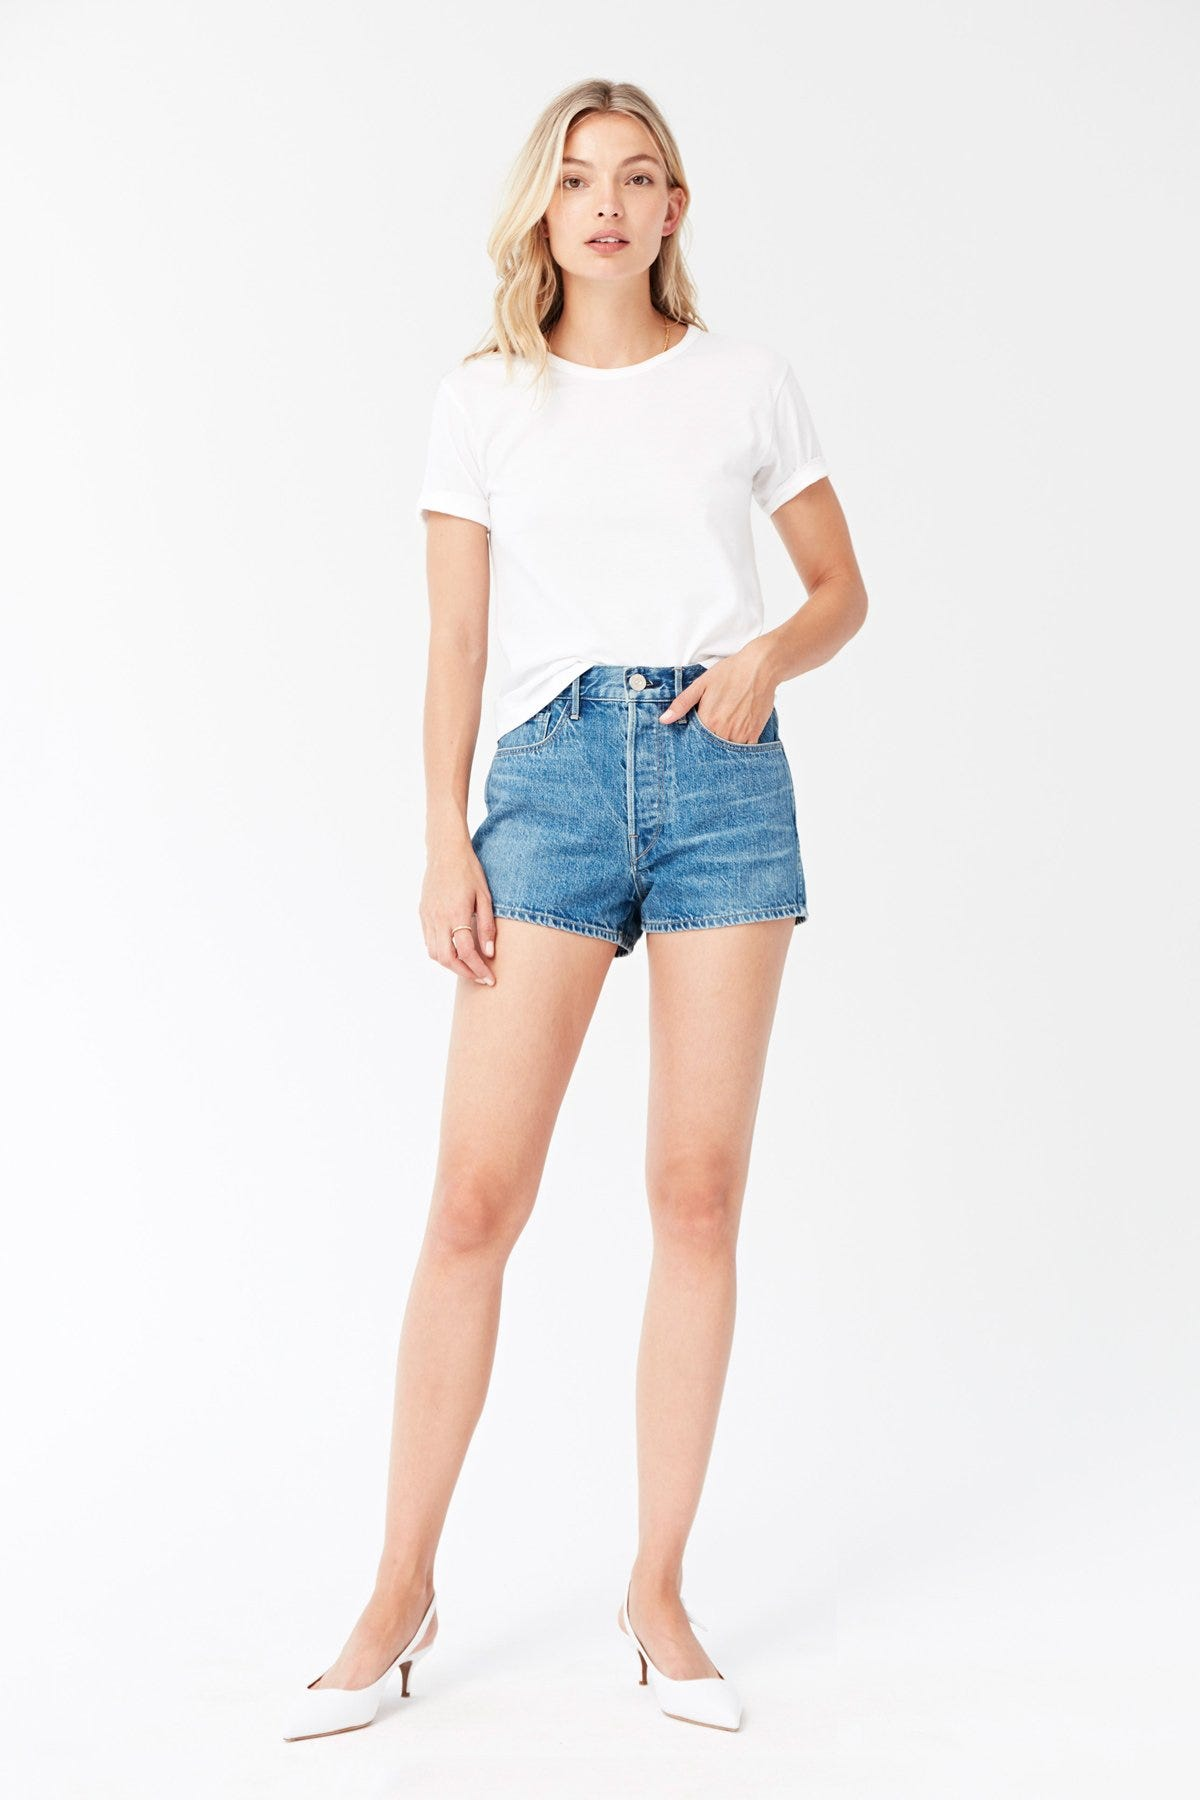 24 Denim Shorts That Are Always Cool, Never Basic